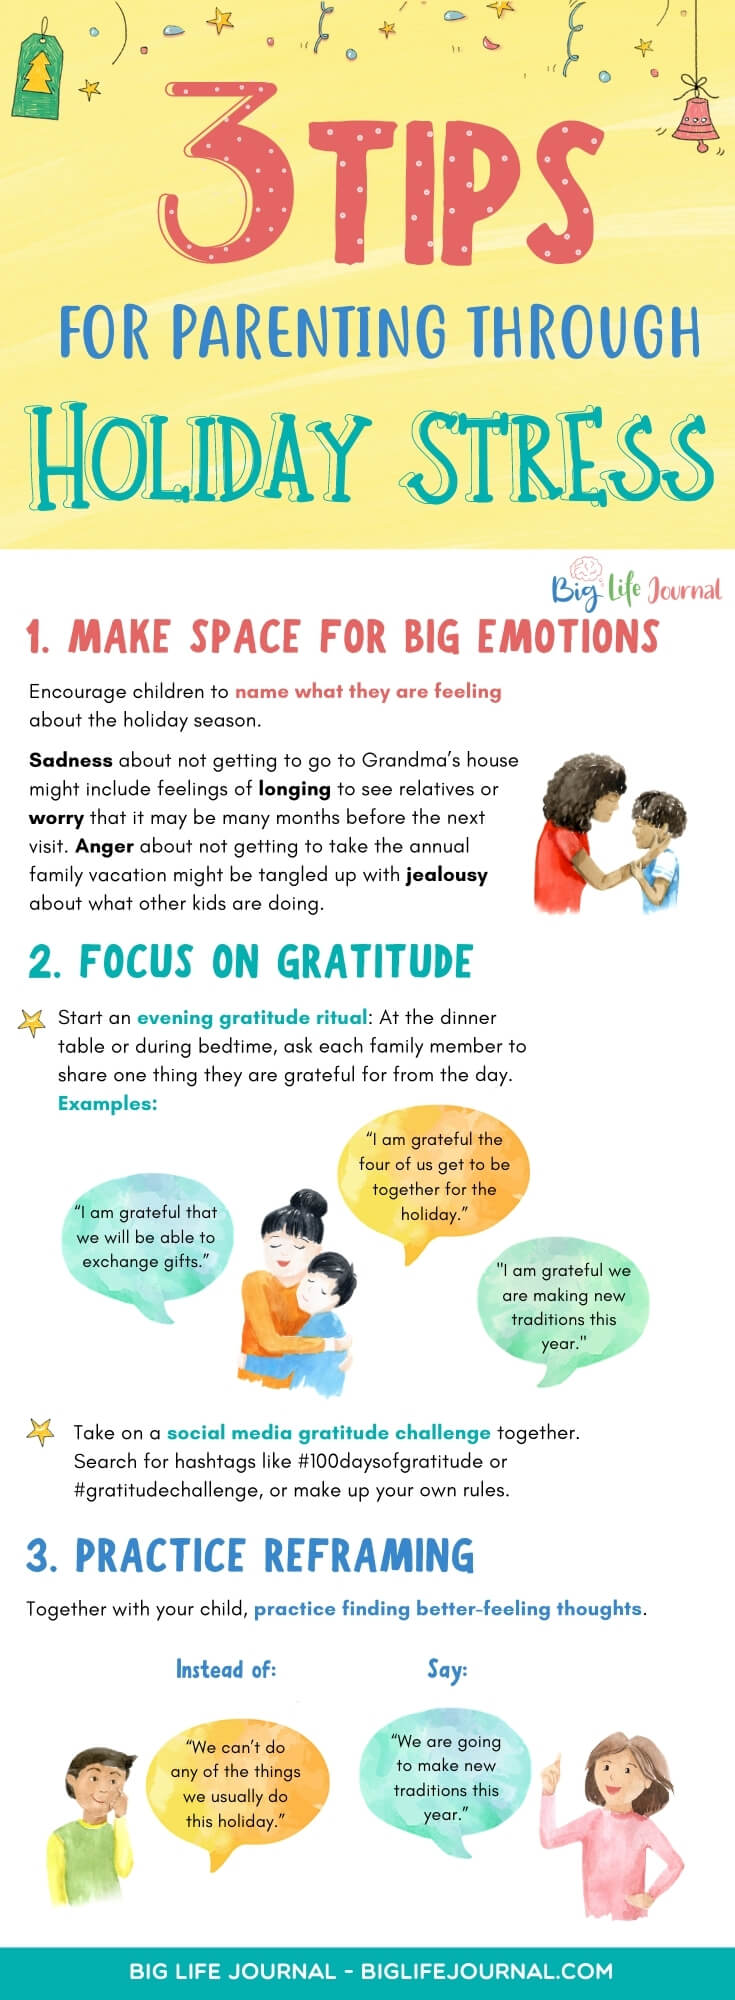 3 Tips for Parenting Through Holiday Stress